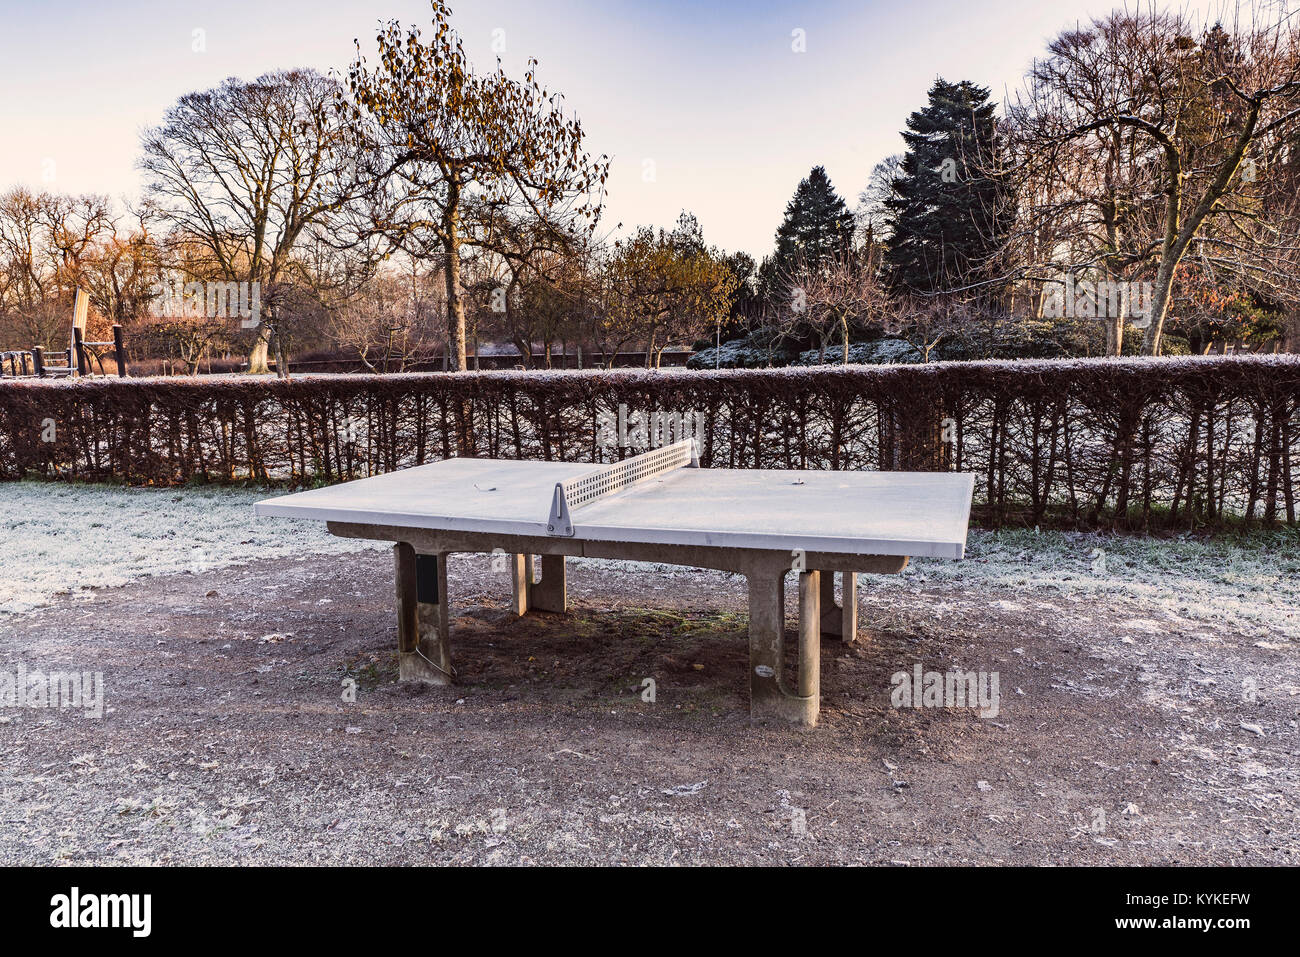 Outdoor table tennis made of concrete standing in a park in the winter - Stock Image